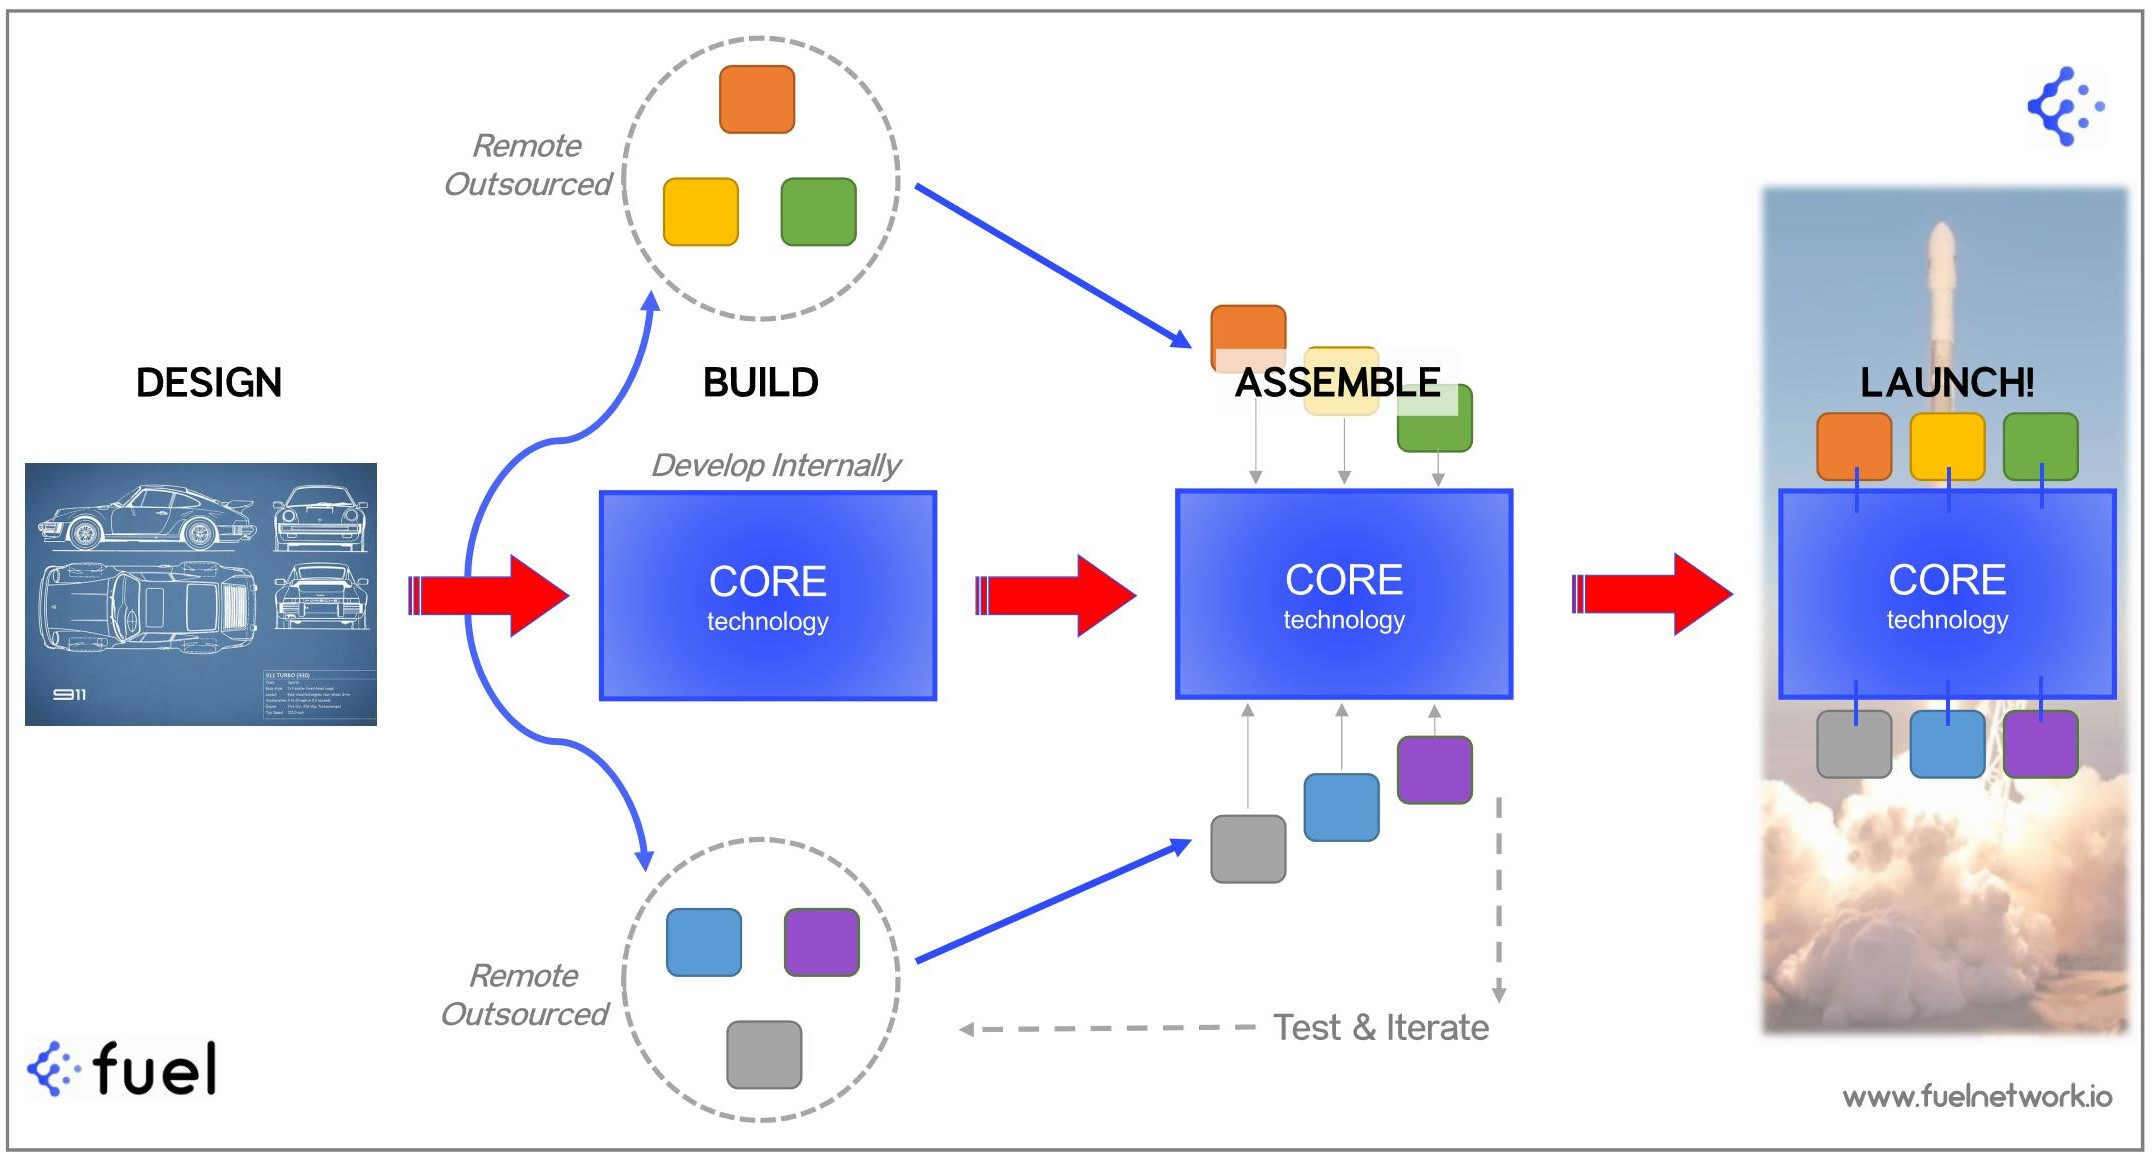 Schematic of hybrid solution for internally built and remote-outsourced software development